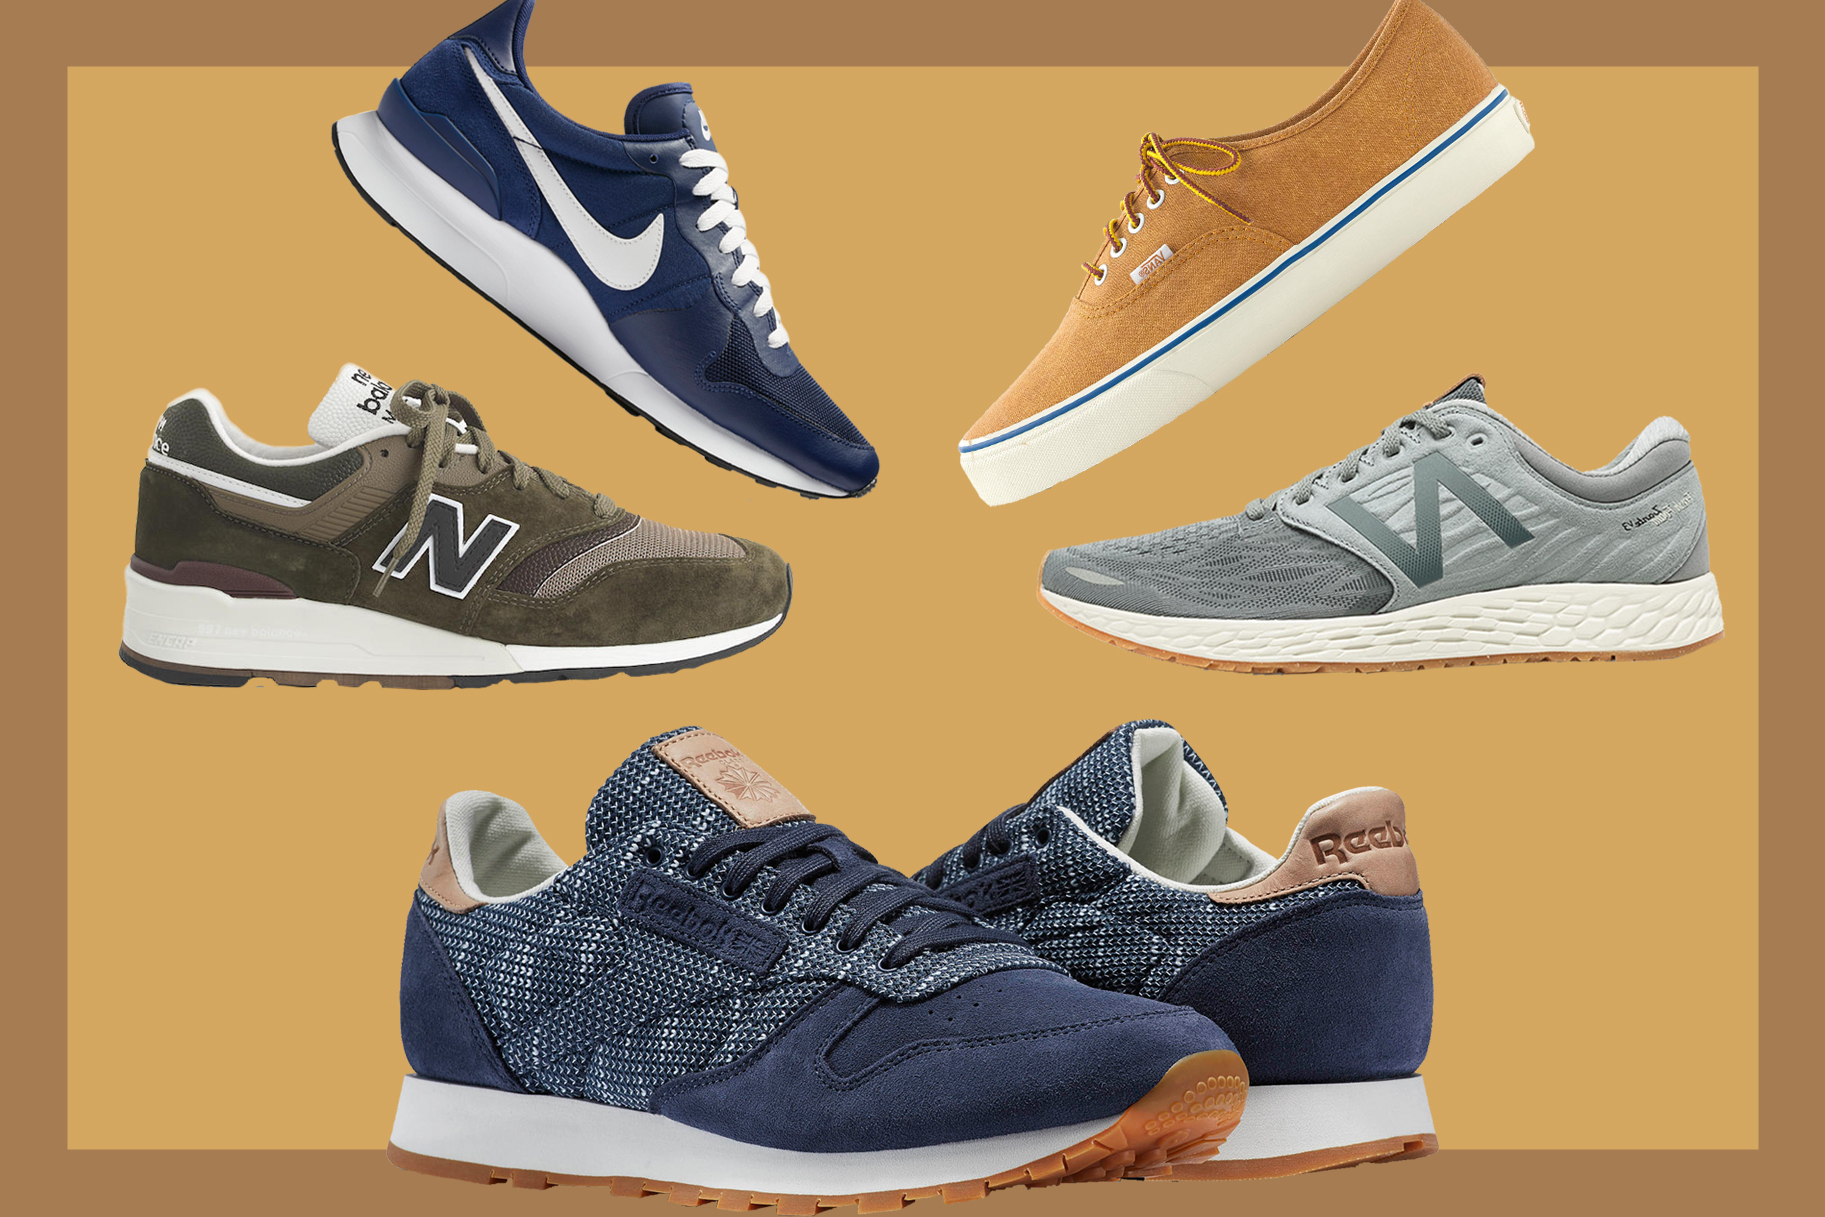 8b73a379c3f 9 Sneakers You Want in Your Man s Closet This Fall